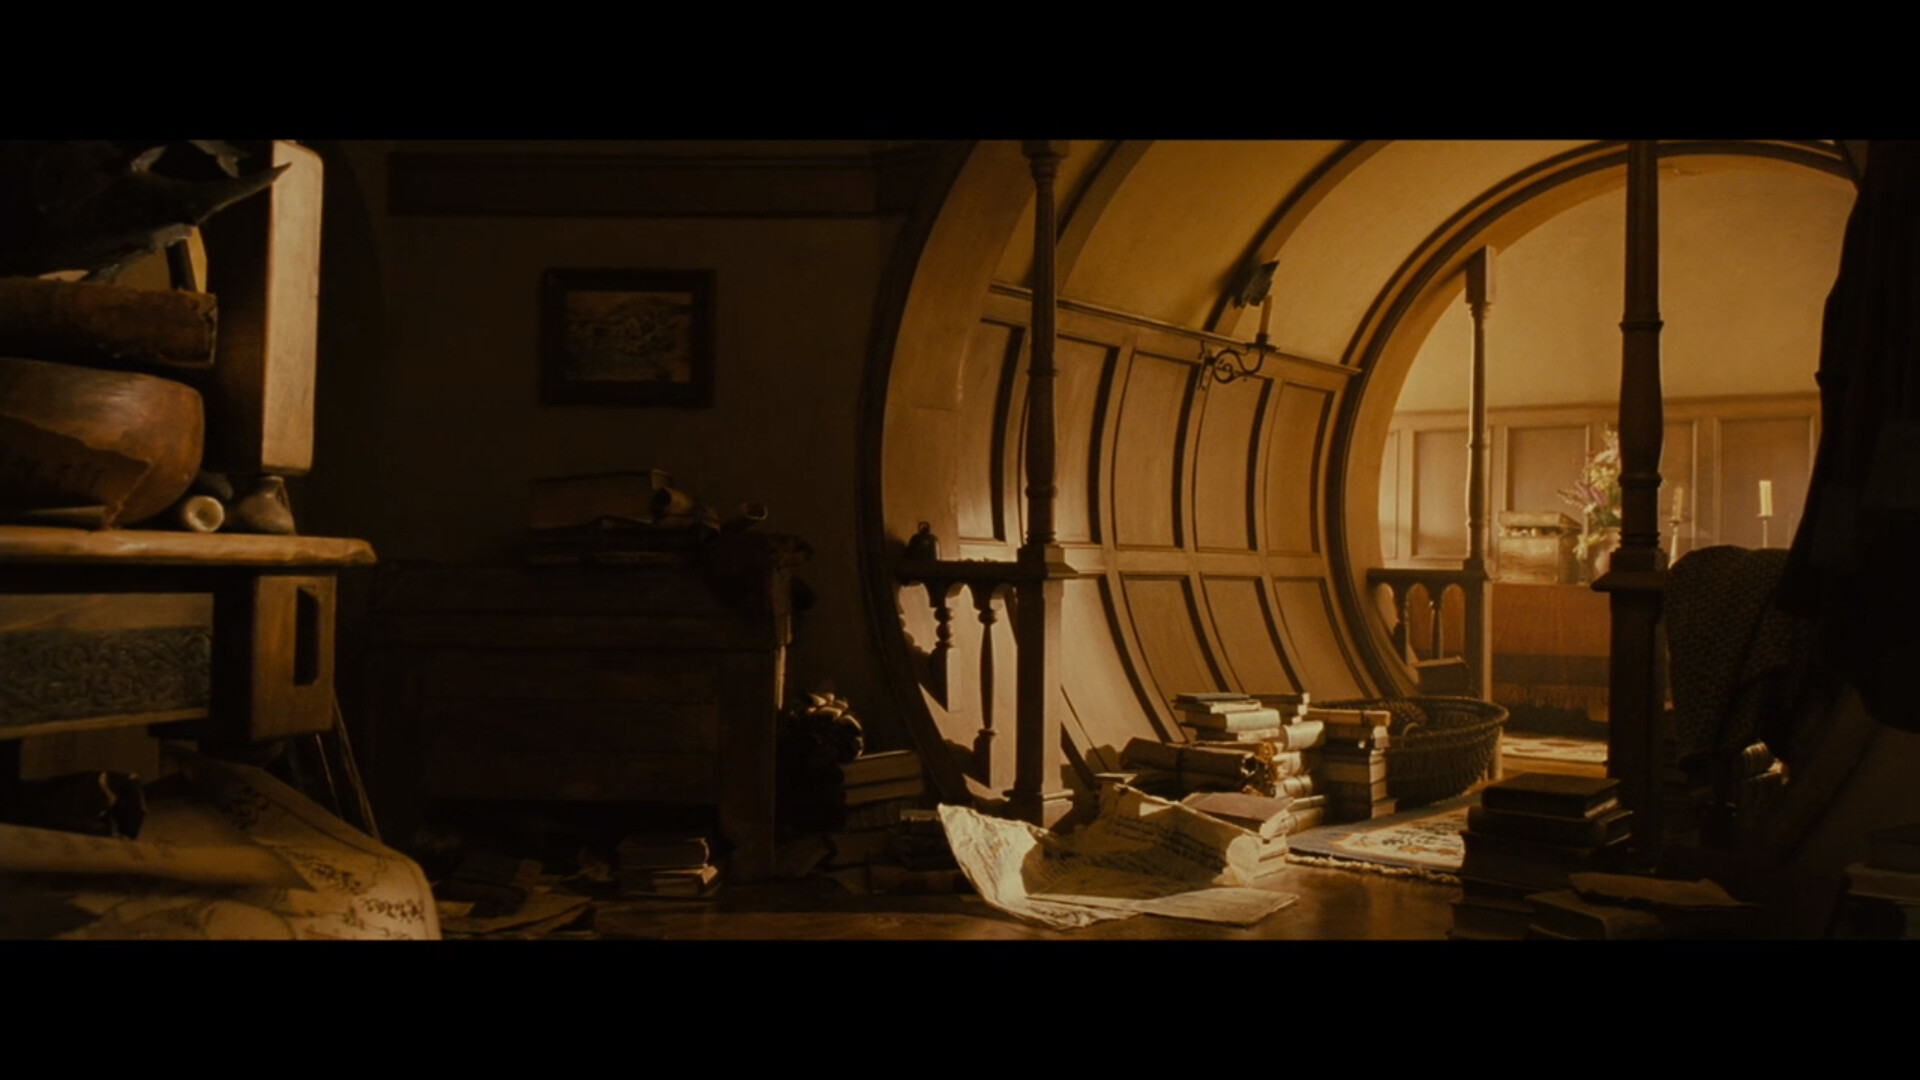 Here is my Reference image from Peter Jackson's The Lord of the Rings: The Fellowship of The Ring